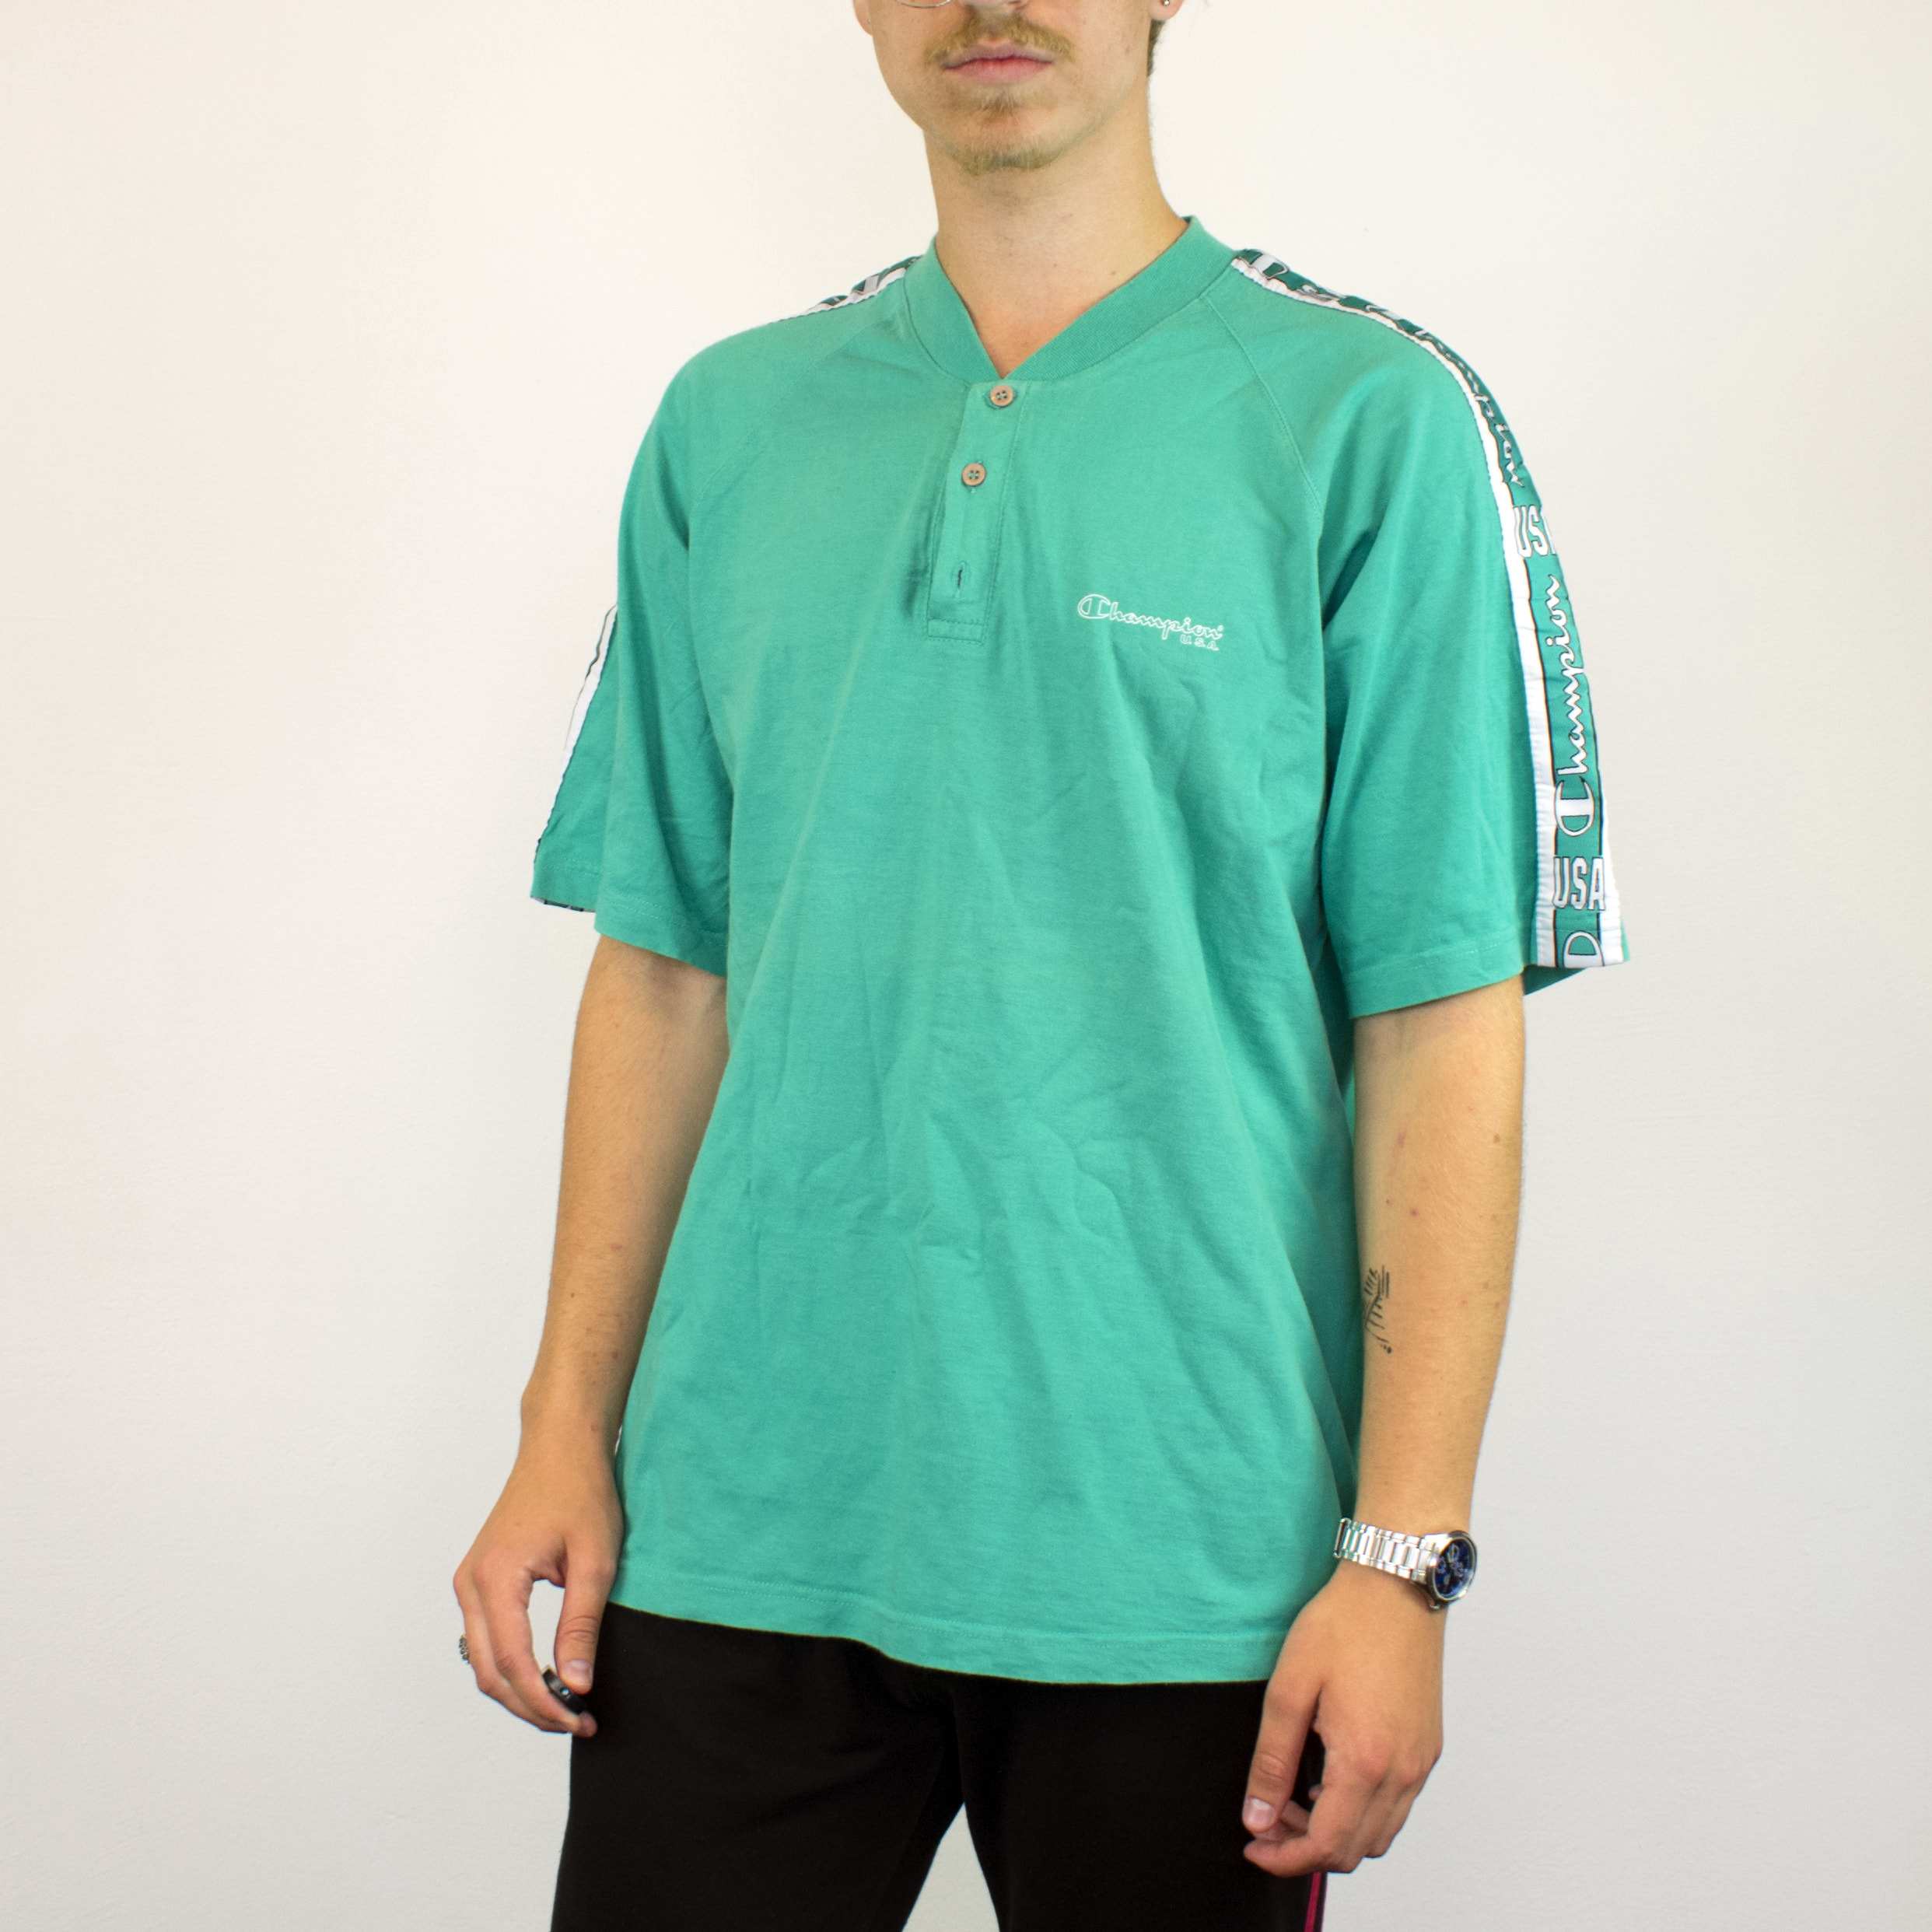 Unisex Vintage Champion polo shirt in cyan has a small spellout on the front size L